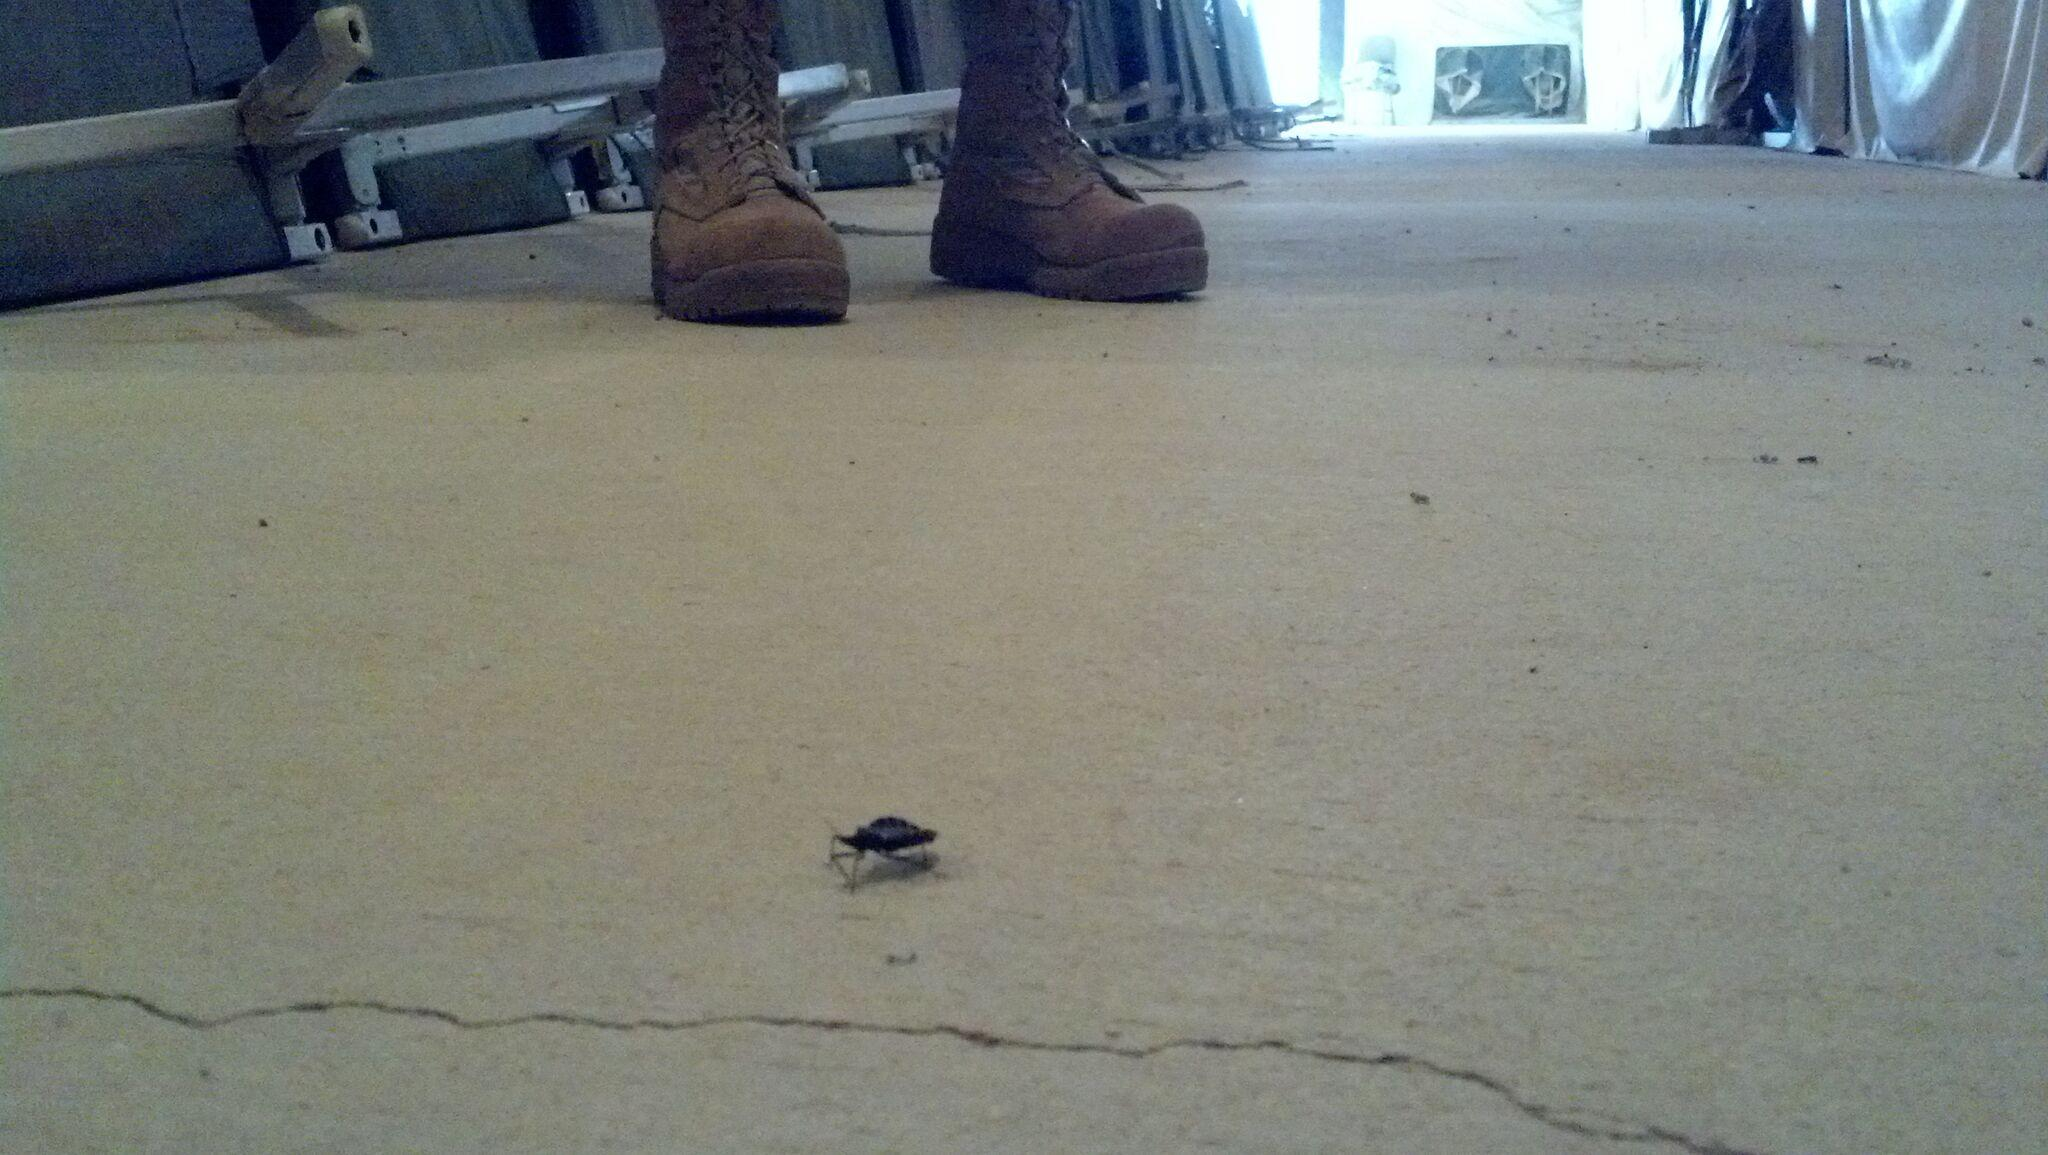 A kissing bug on the floor of camping barracks